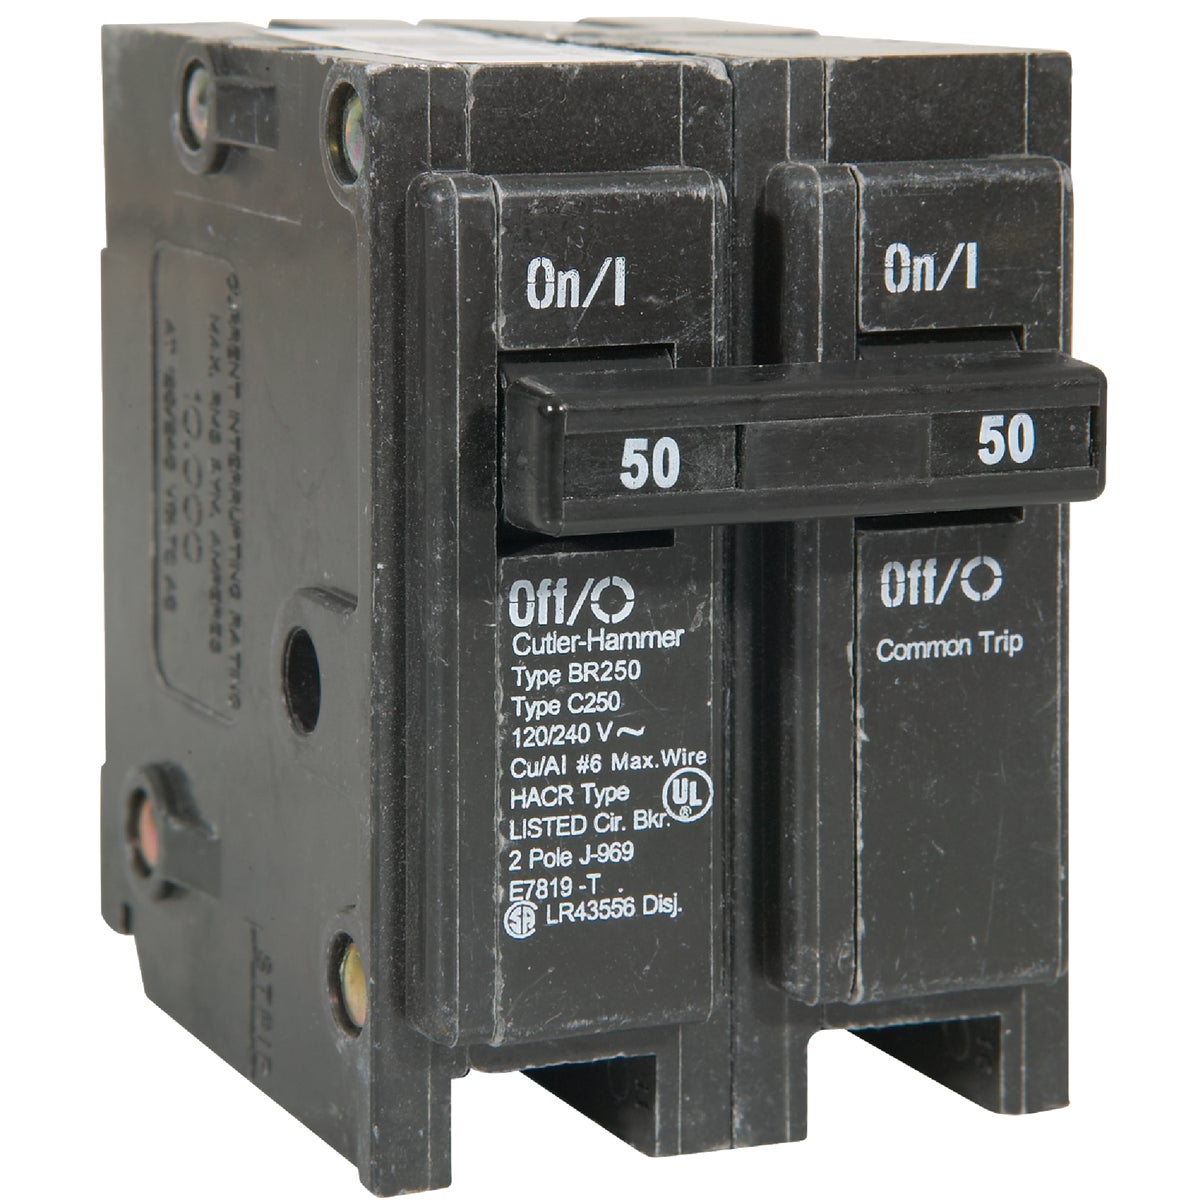 50A 2P CIRCUIT BREAKER - BR250 by Eaton Corporation